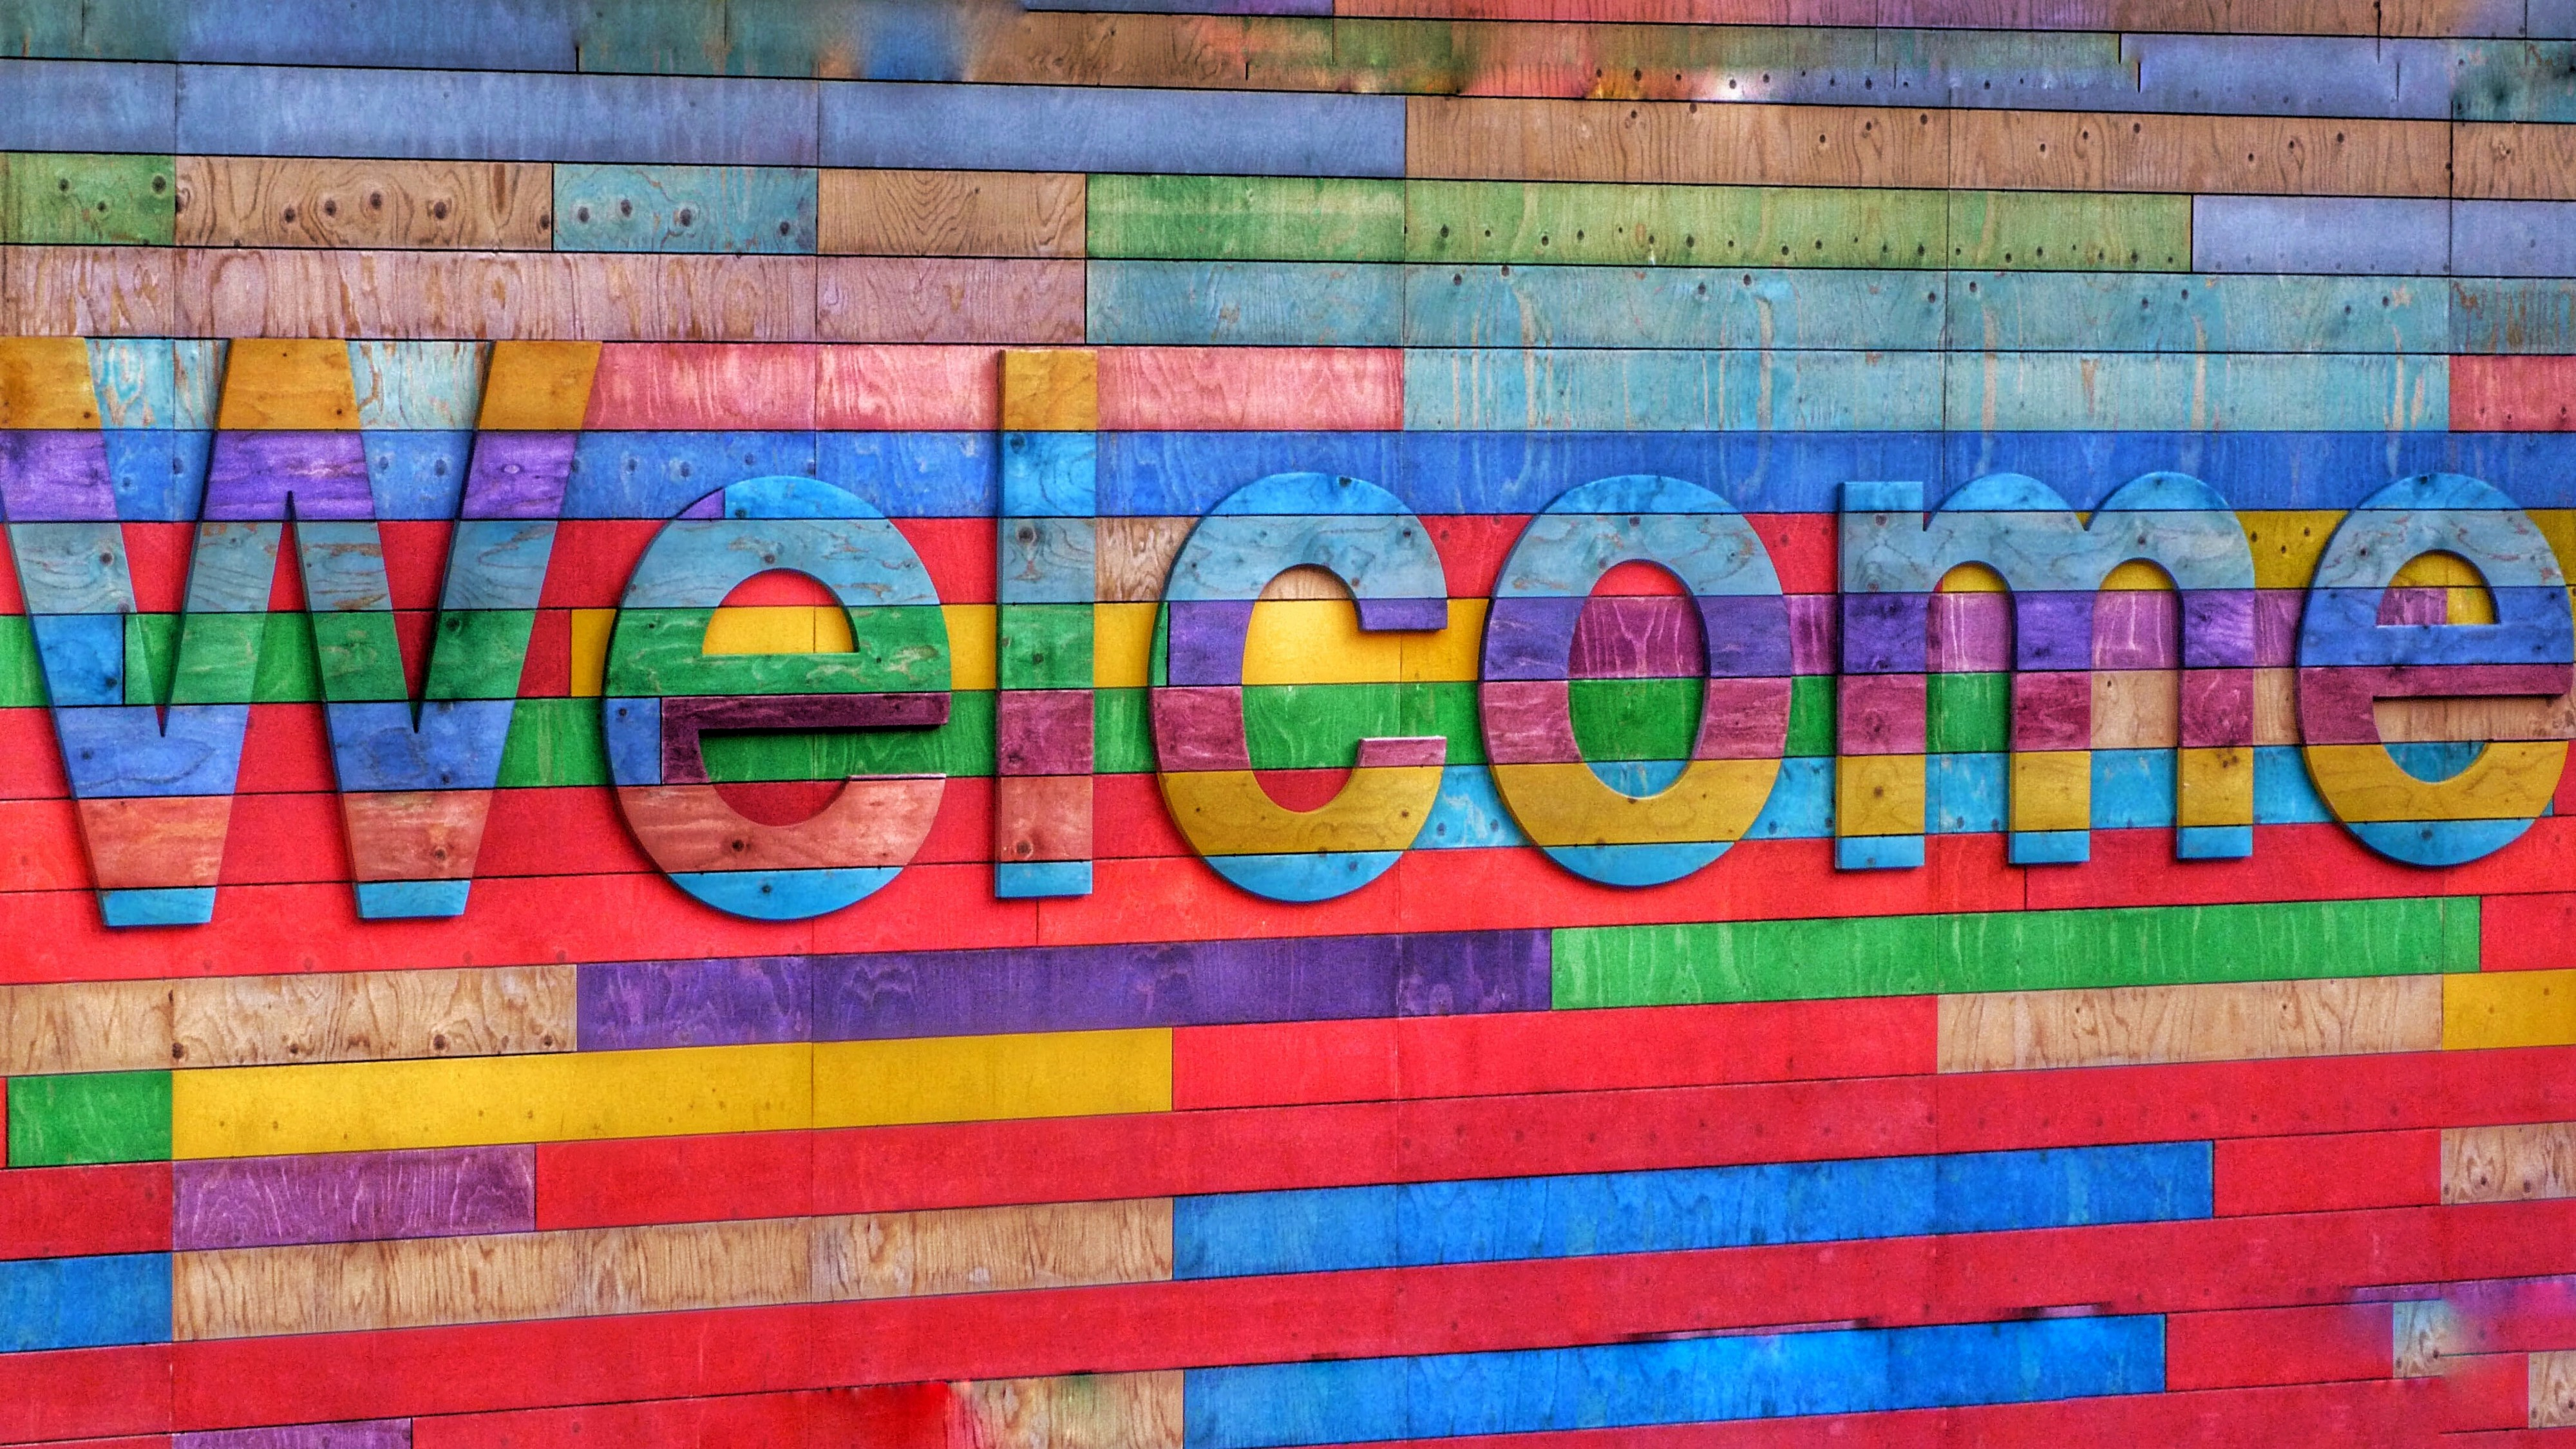 """A brightly colored brick wall with the word """"Welcome"""" in contrasting bright colors on it."""